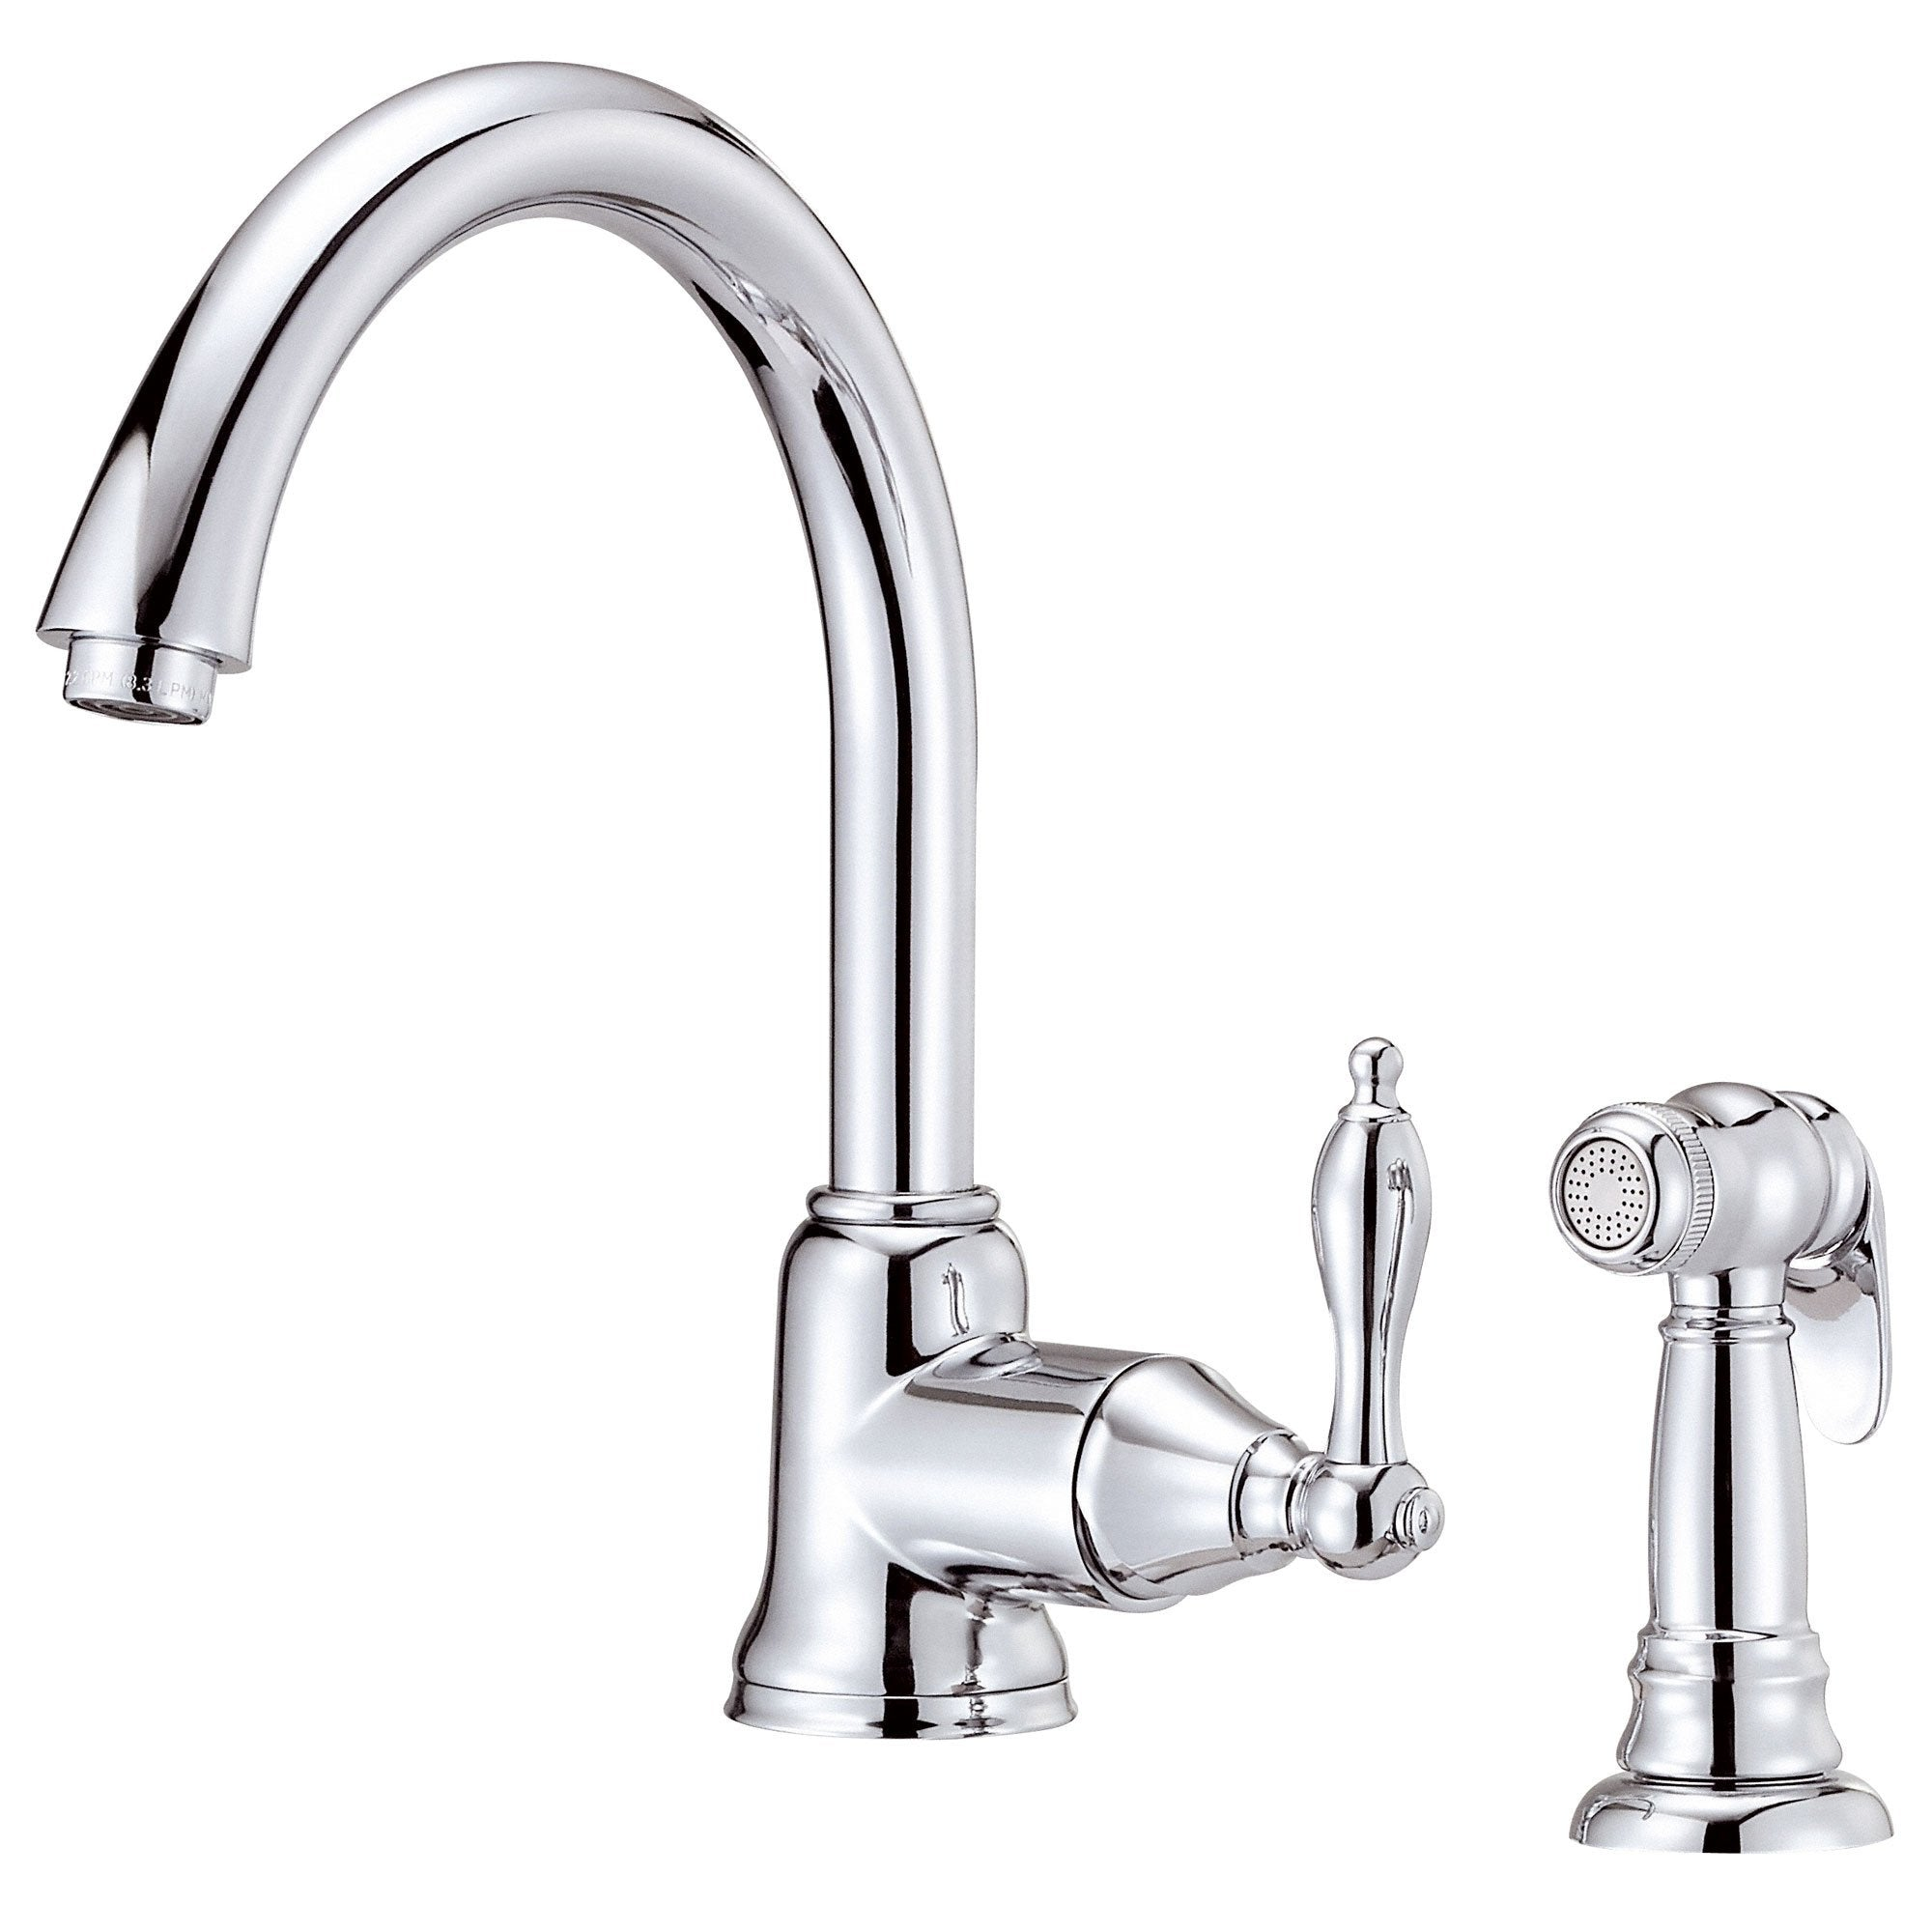 Danze Fairmont Chrome Single Handle Gooseneck Spout Kitchen Faucet with Sprayer